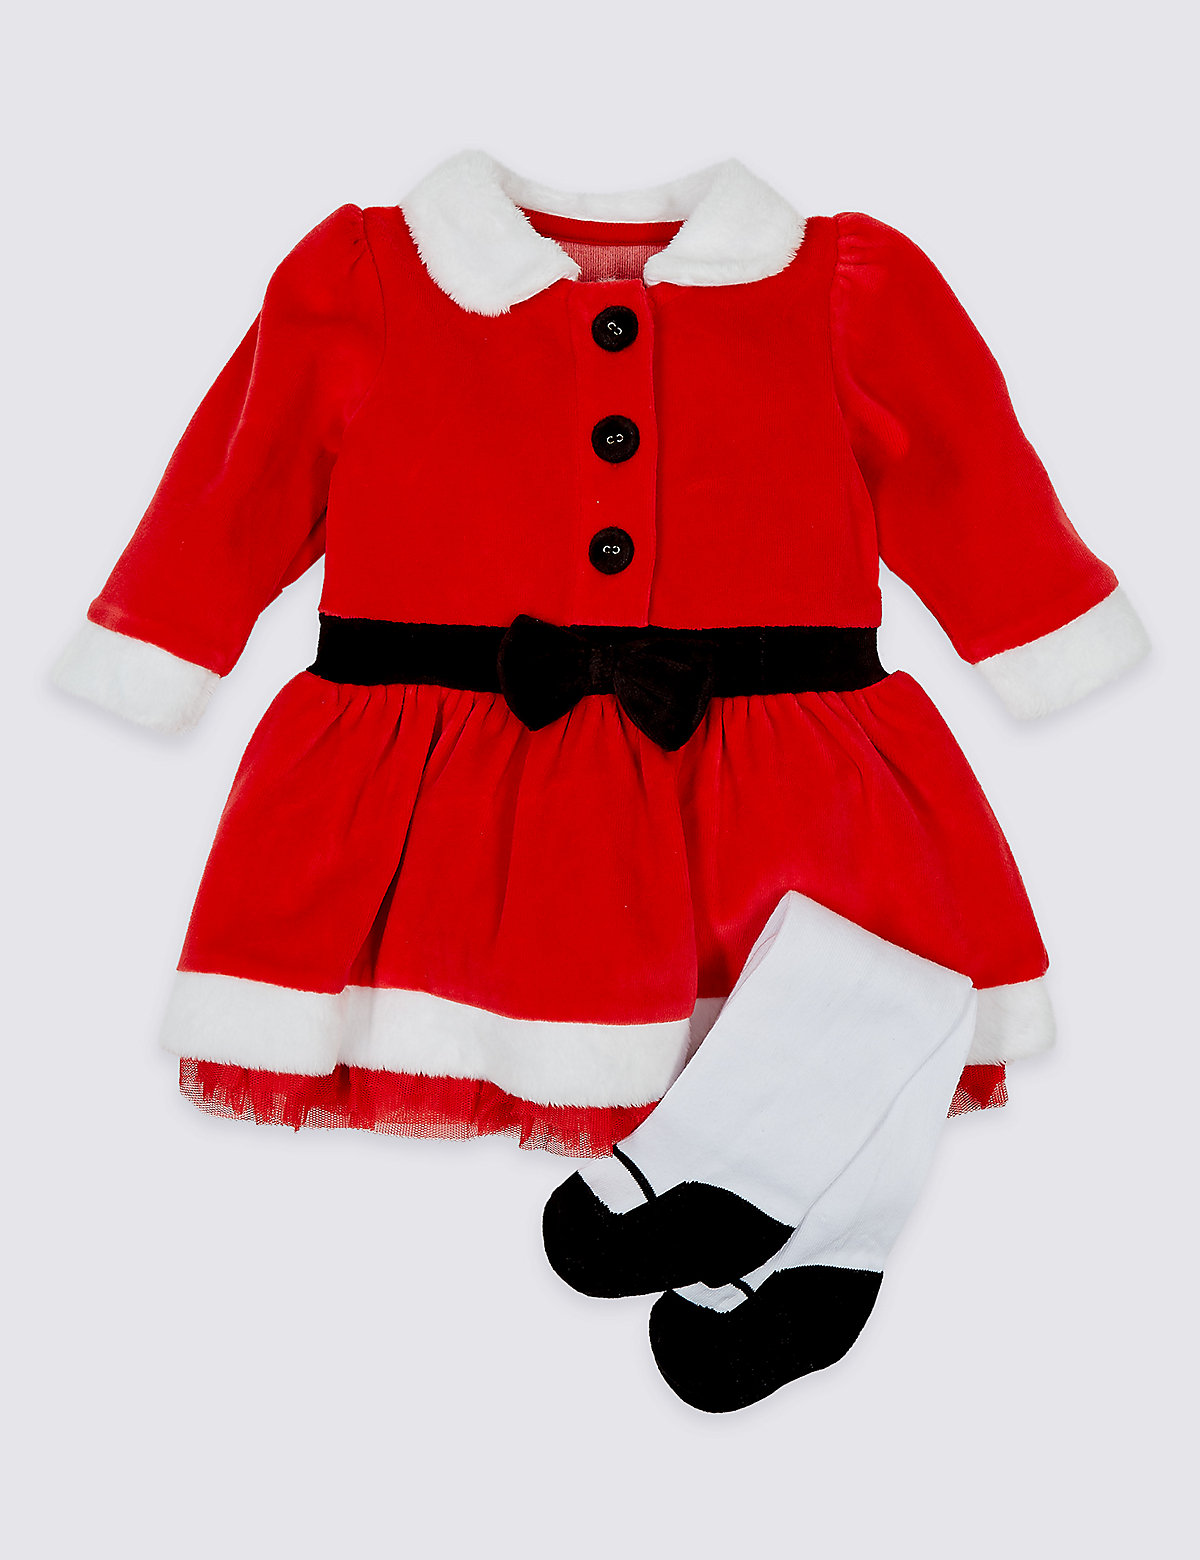 2 Piece Santa Dress with Tights Outfit